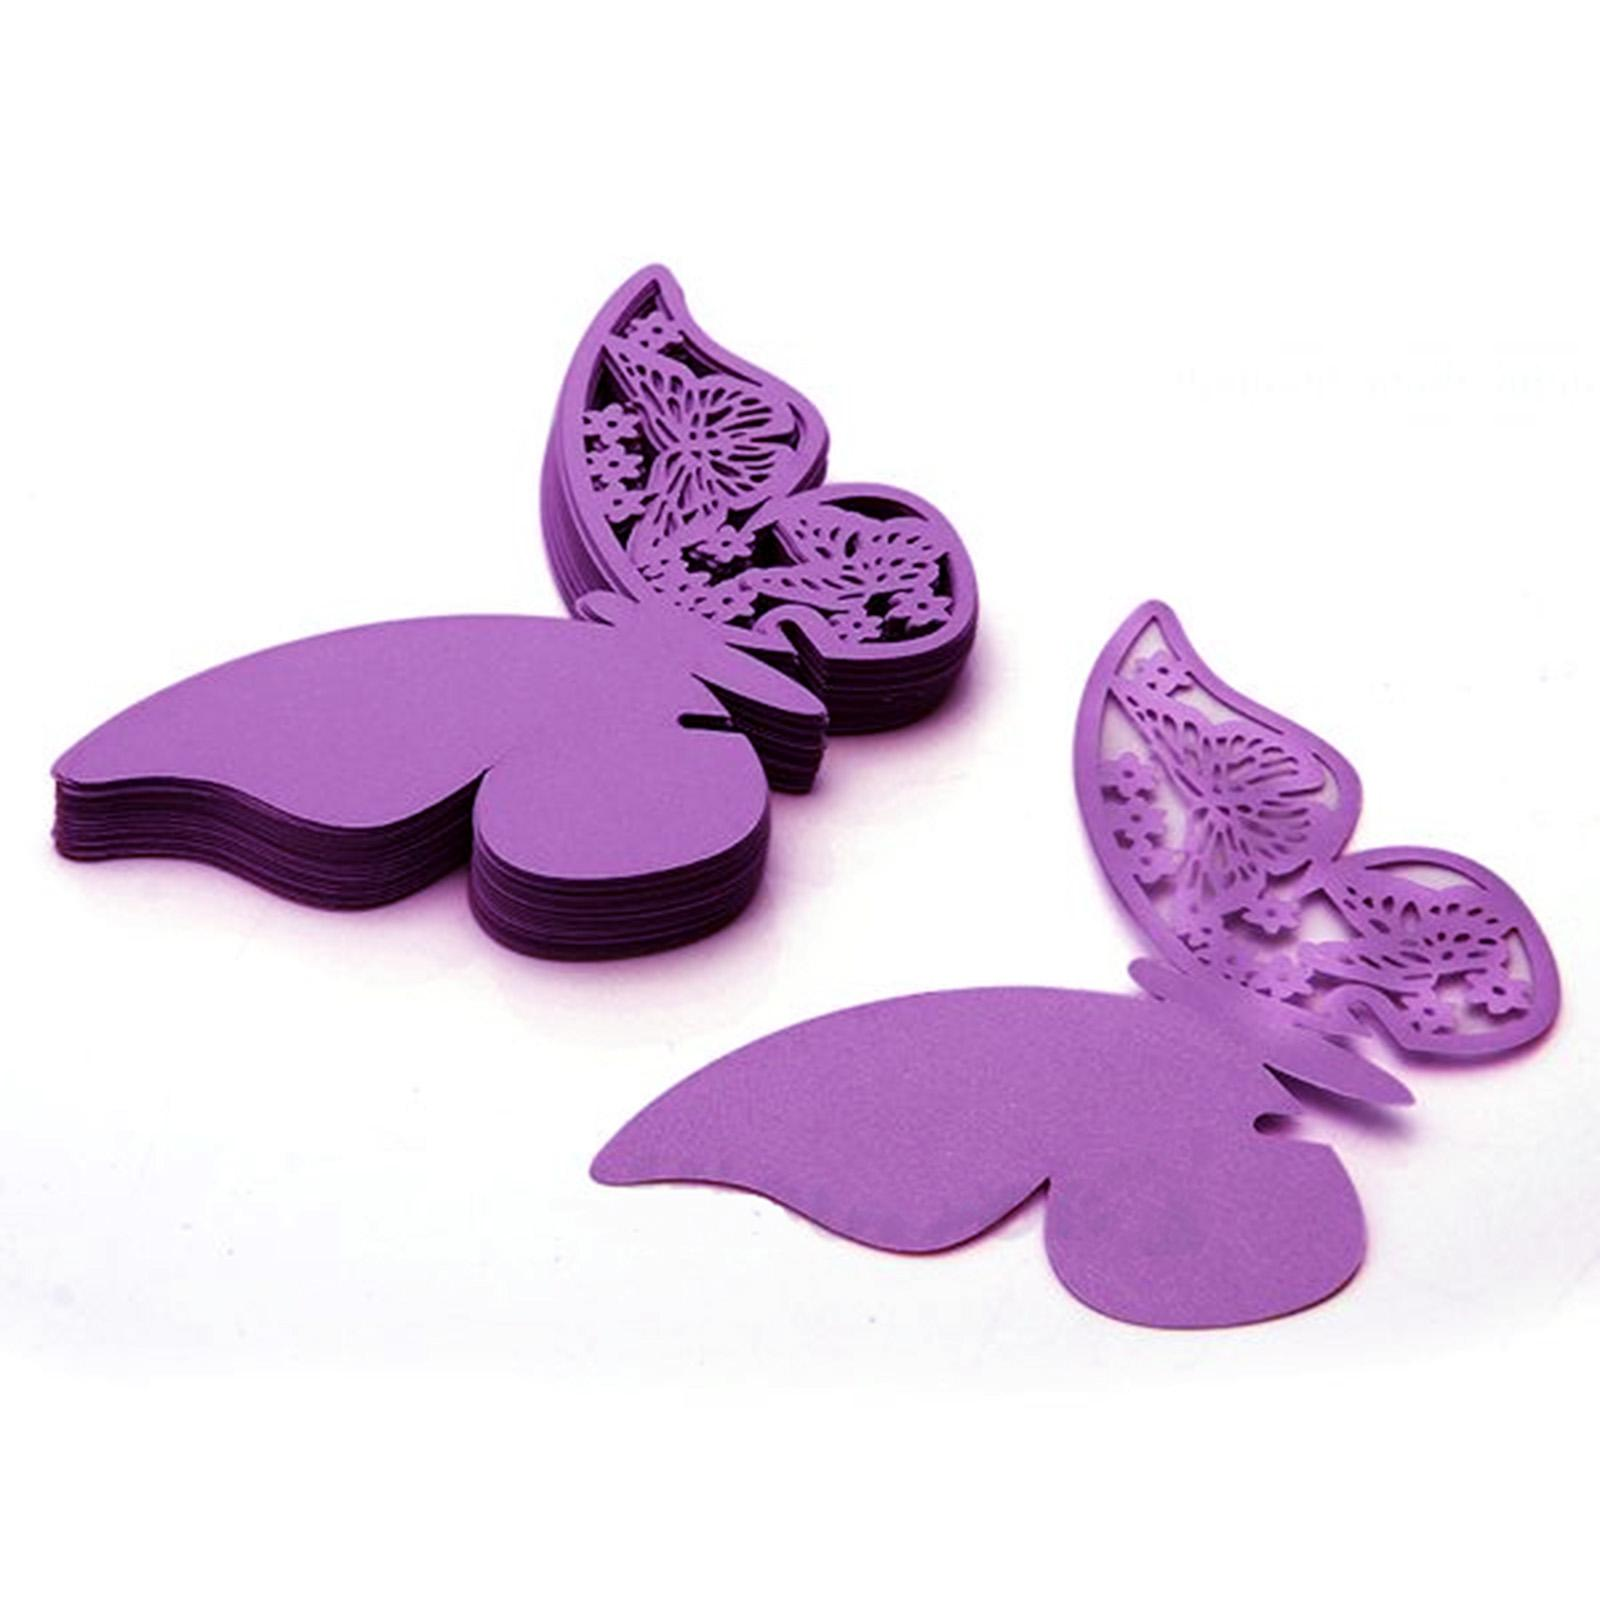 Butterfly Laser Cut Paper Place Card / Escort Card / Cup Card/ Wine Glass Card For Wedding Party Decoration 40